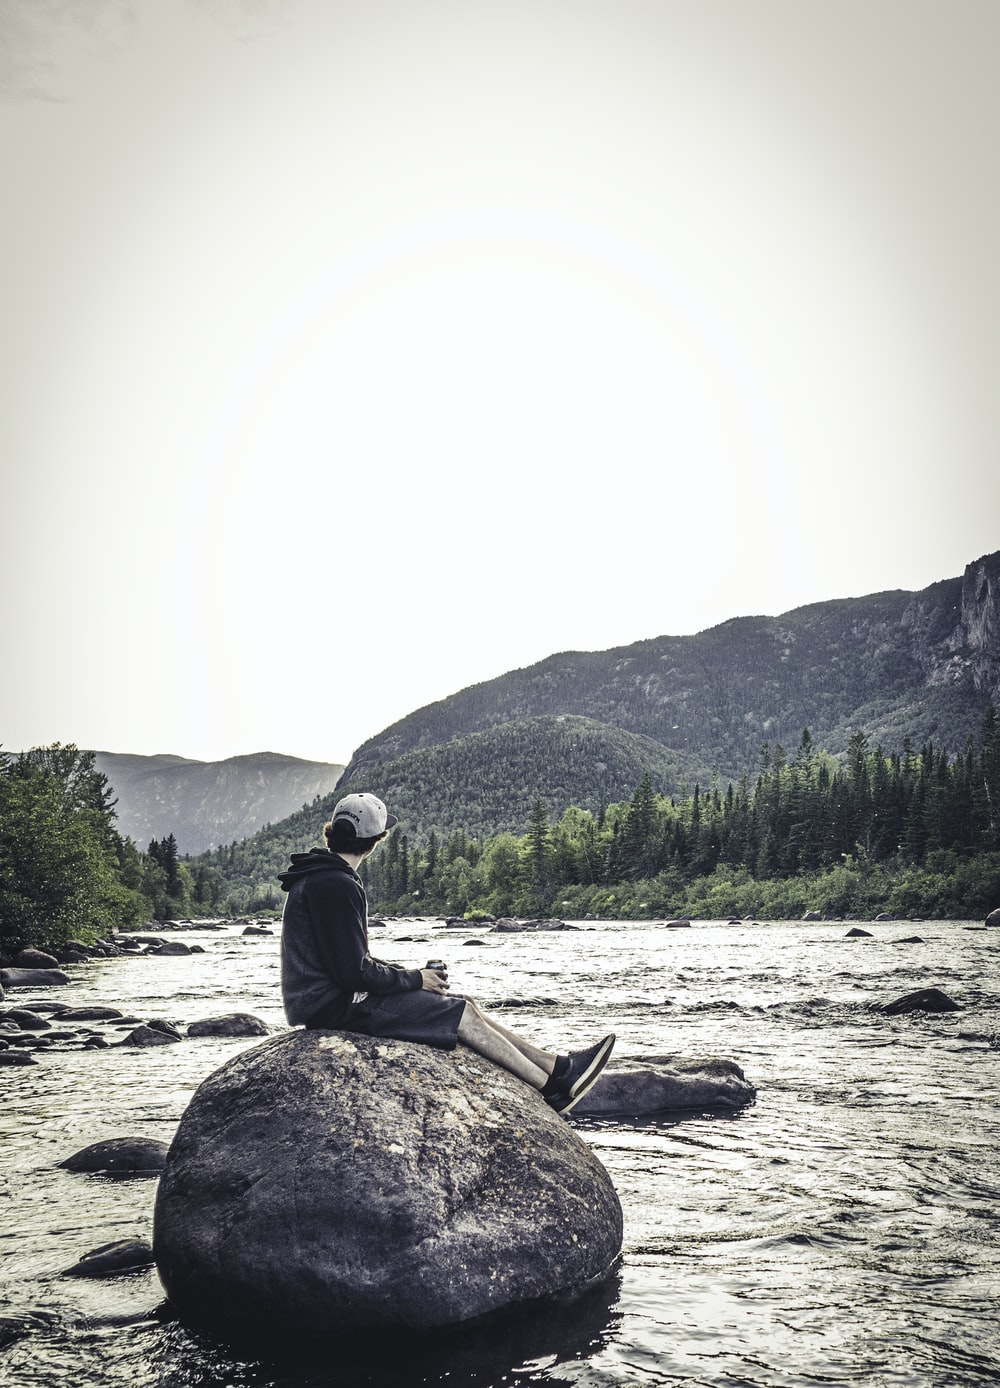 man sitting on rock viewing river and mountain during daytime